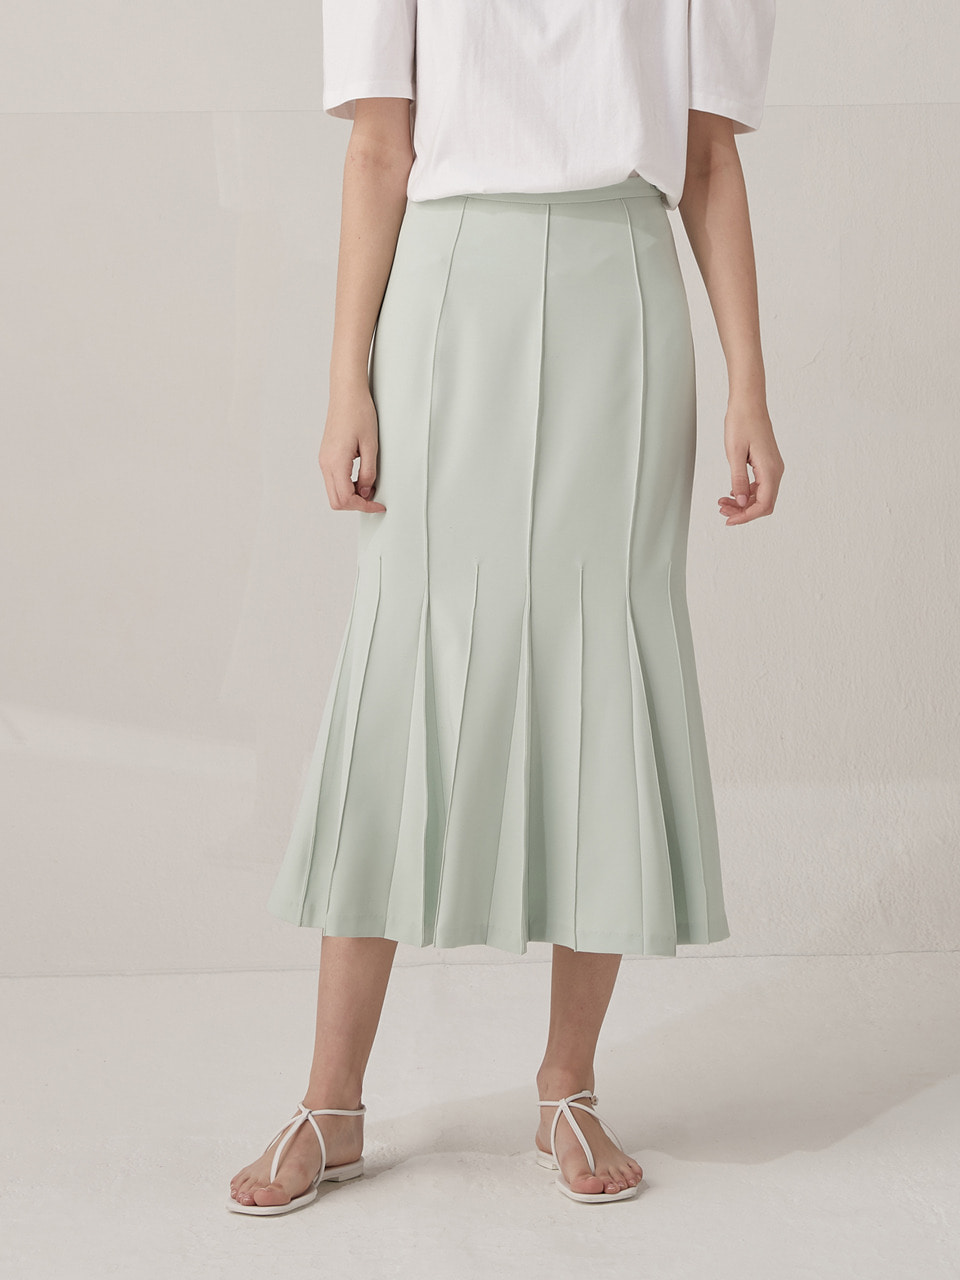 Pin-tuck mermaid skirt - Mint